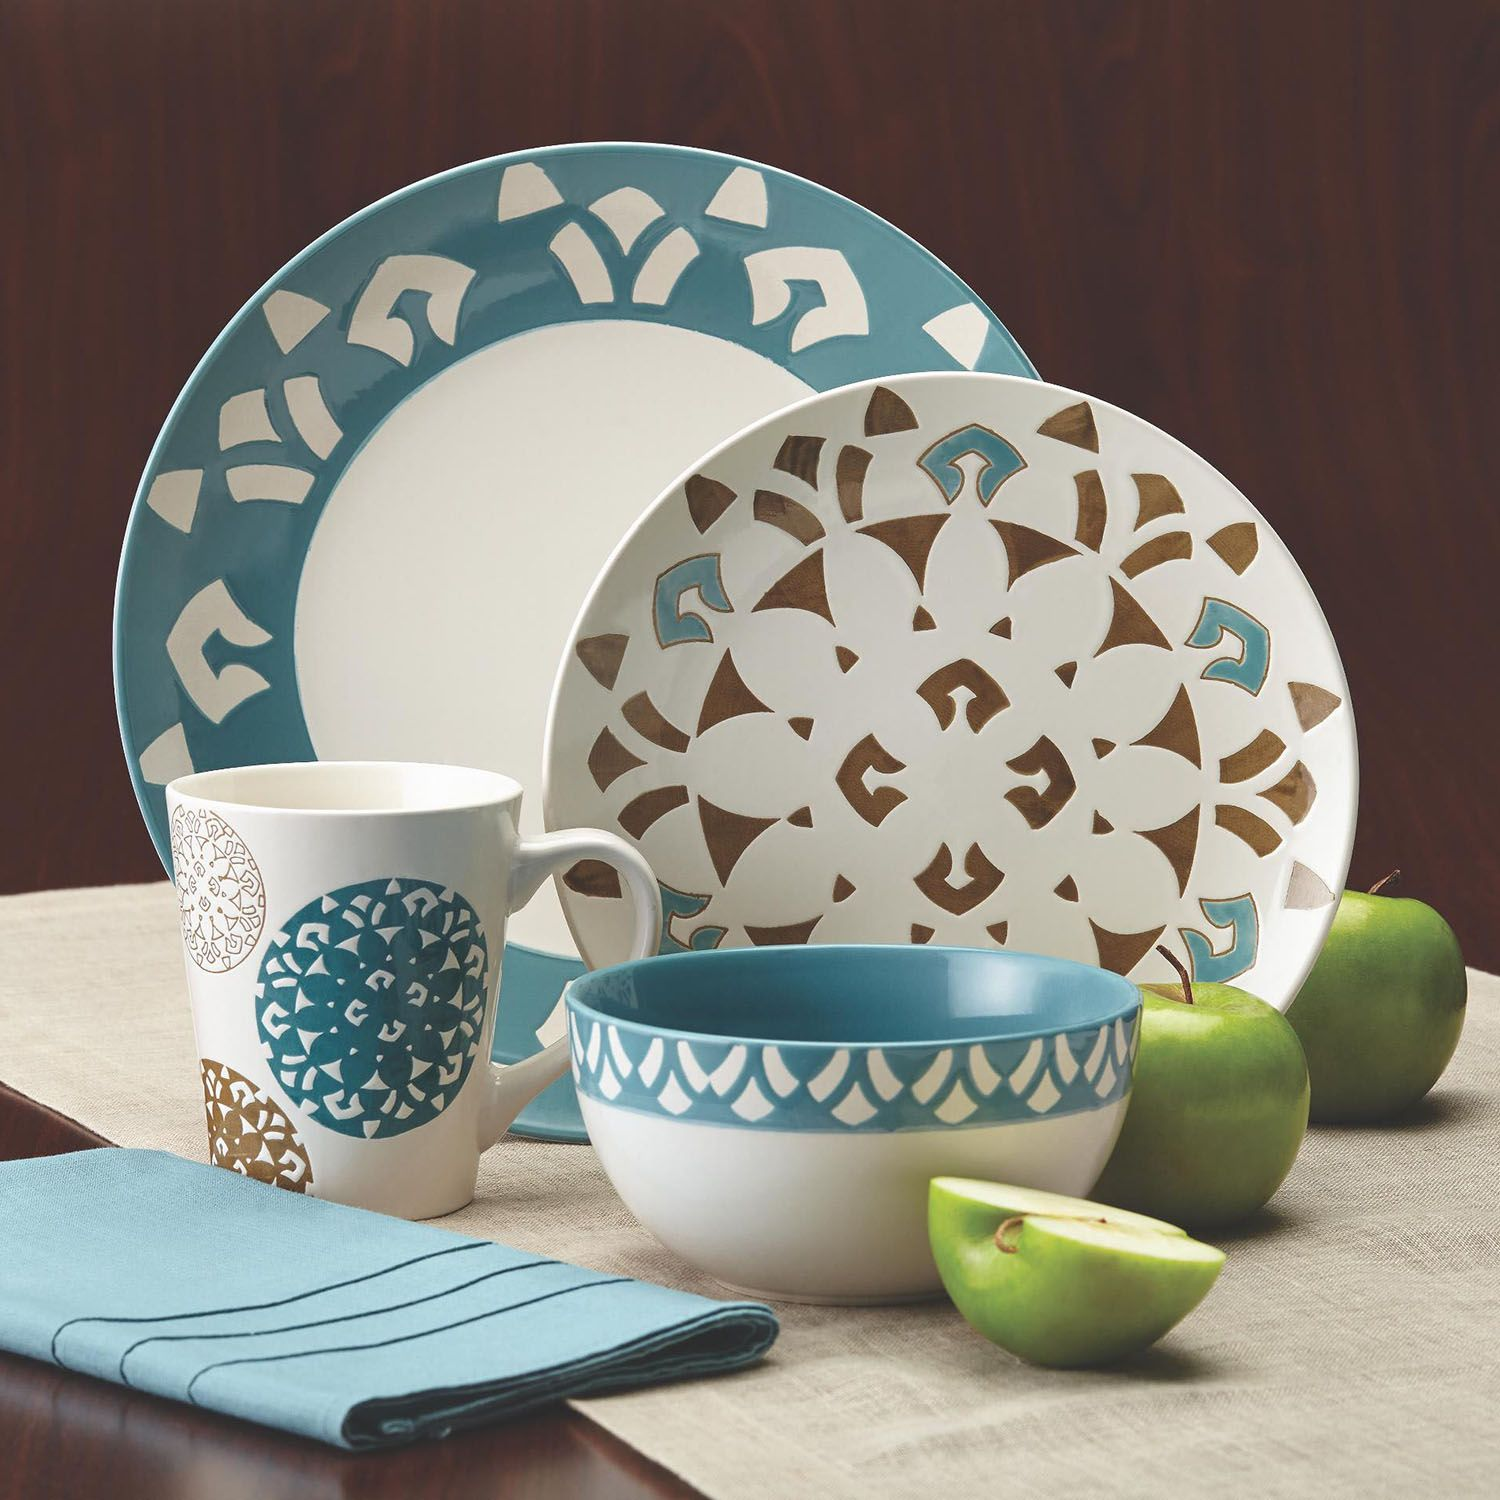 & Rachael Ray Pendulum 16-pc. Dinnerware Set